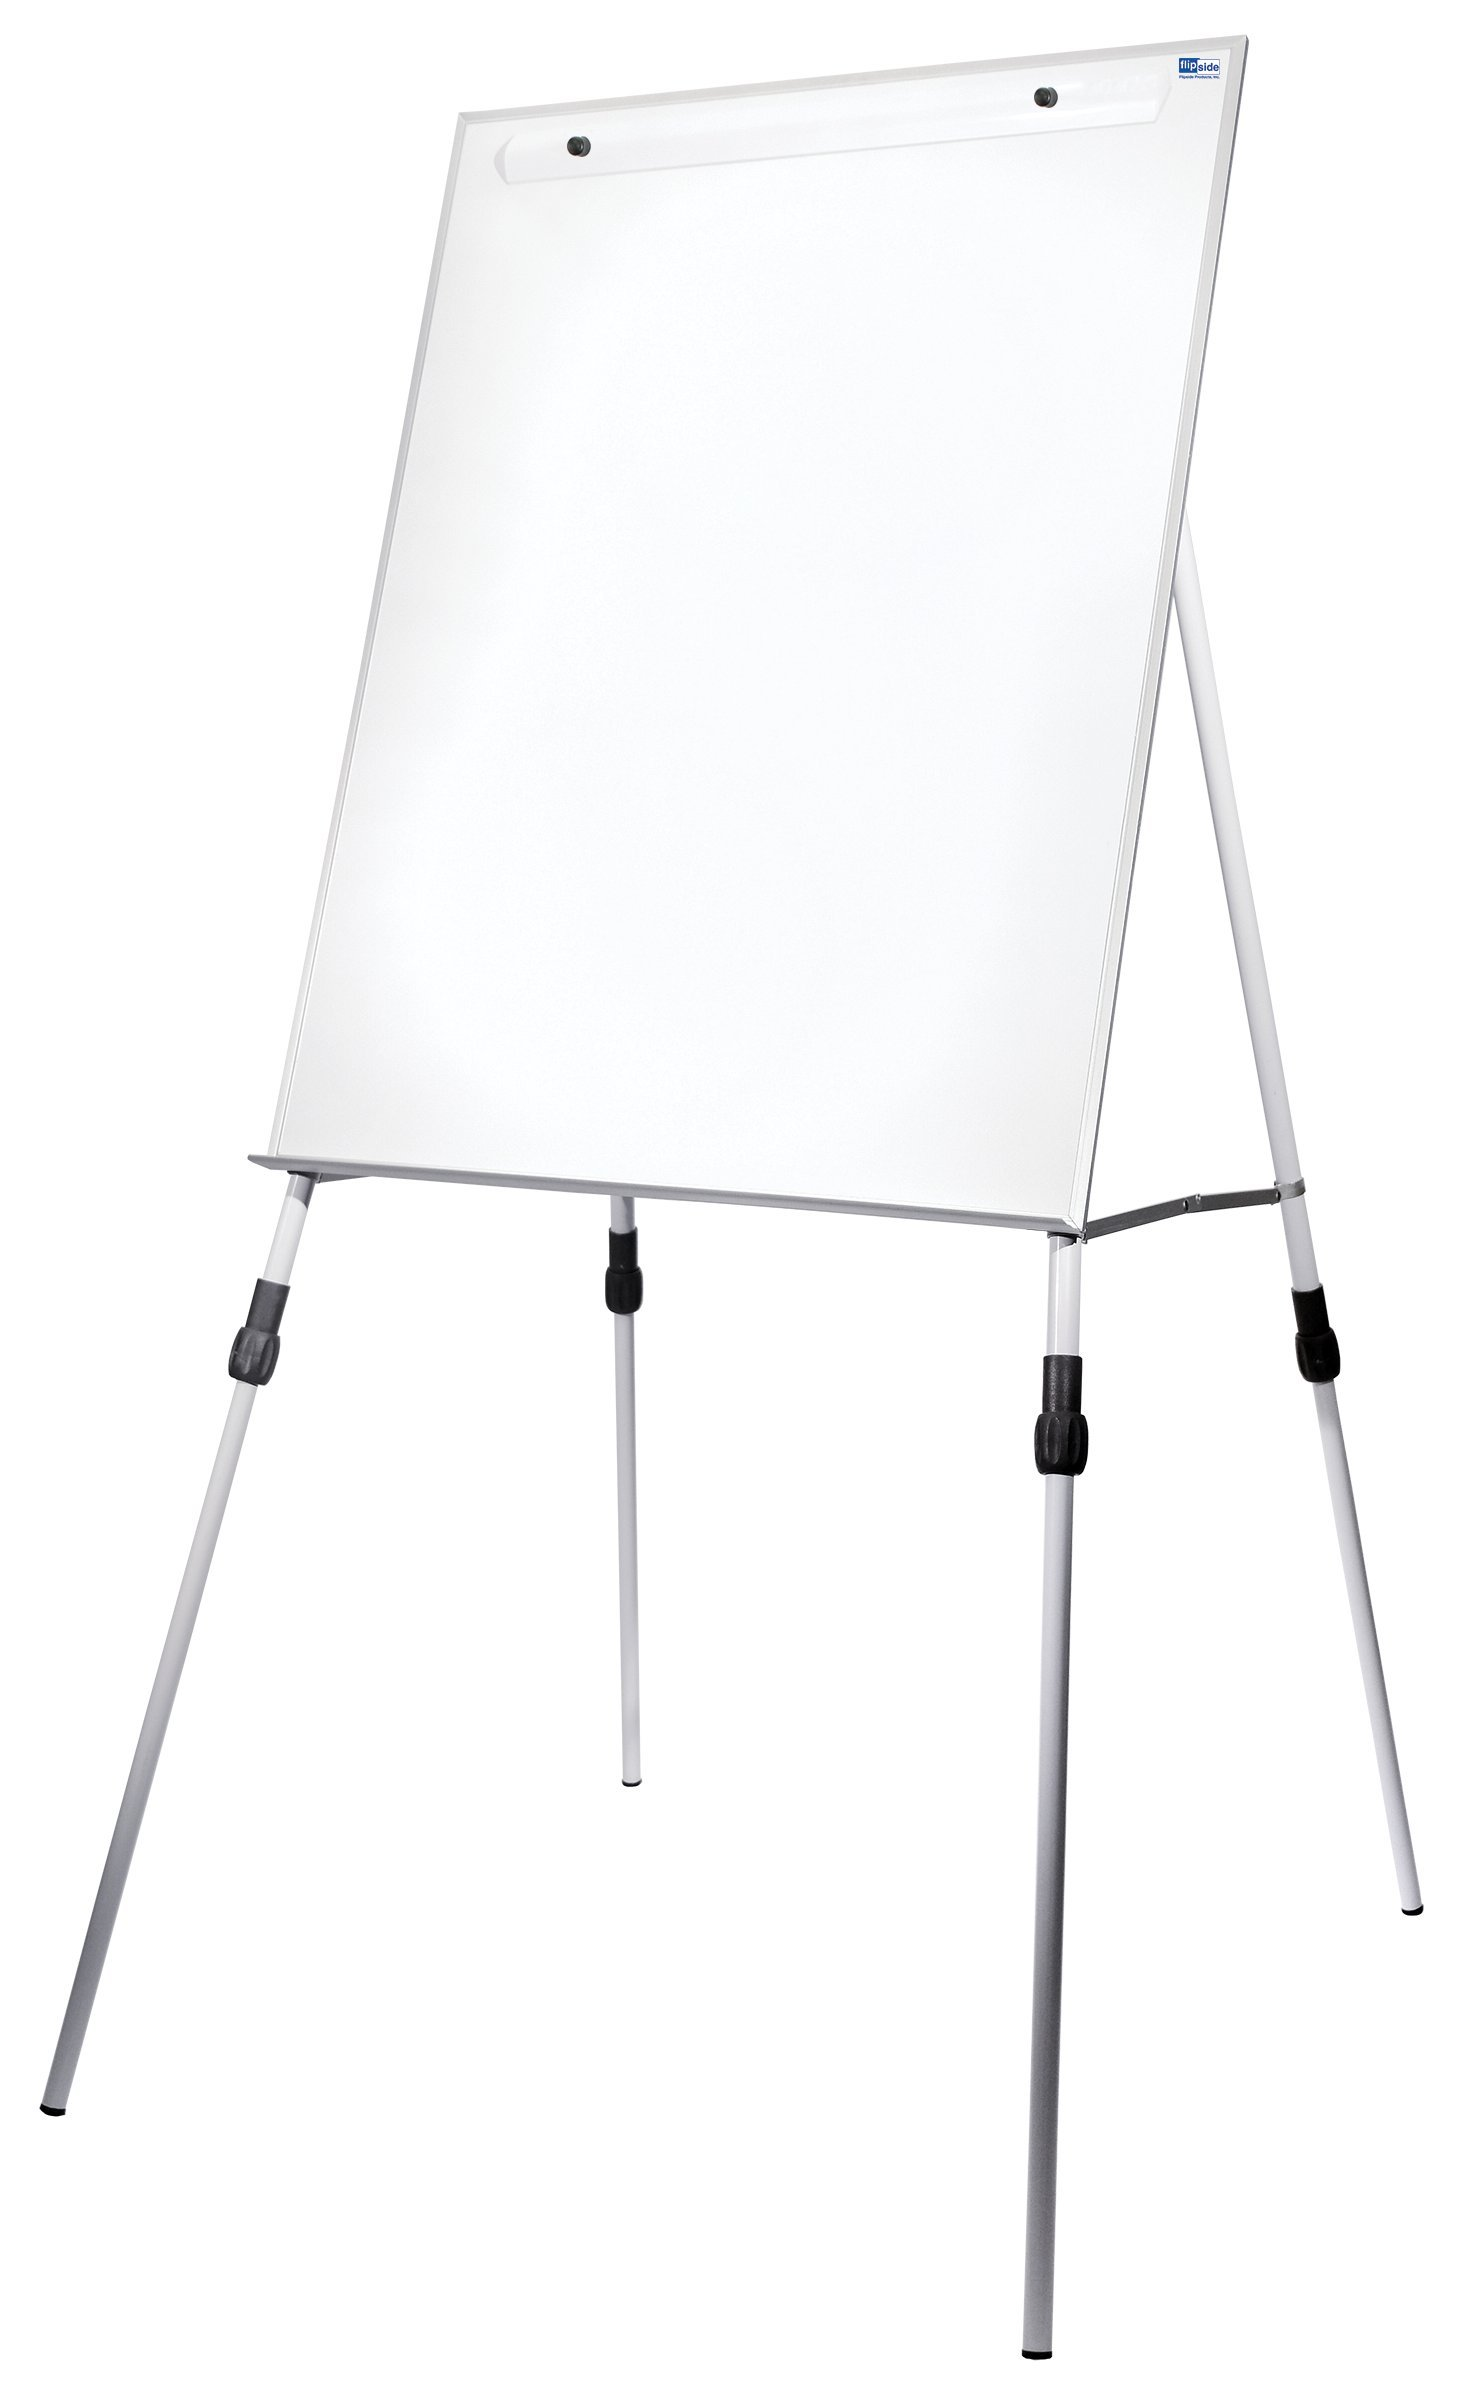 Flipside Products Adjustable Dry Erase Easel Style Dry Erase Board (18253)